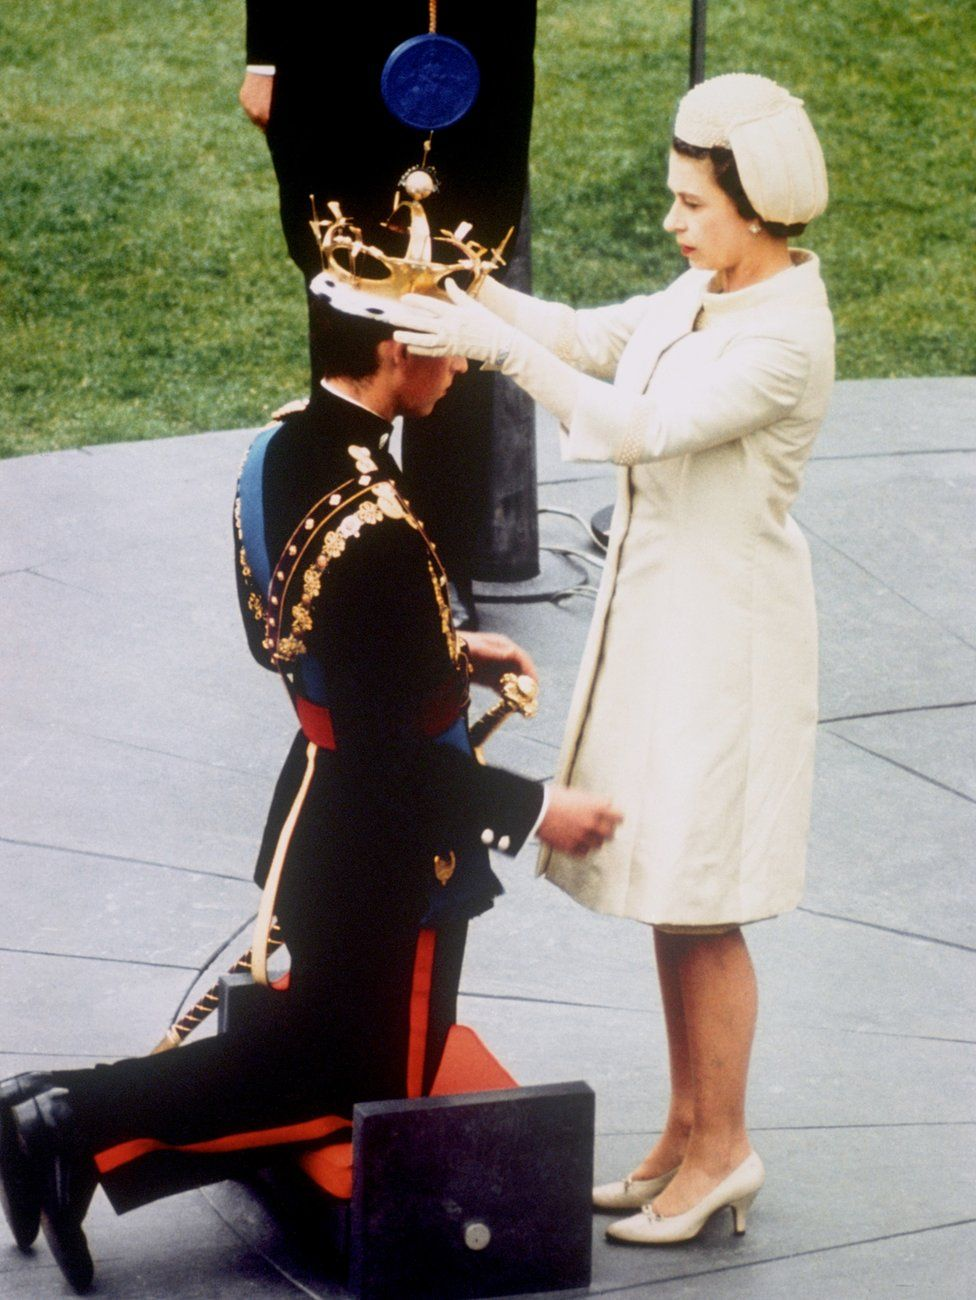 Queen Elizabeth II investing her son, Prince Charles